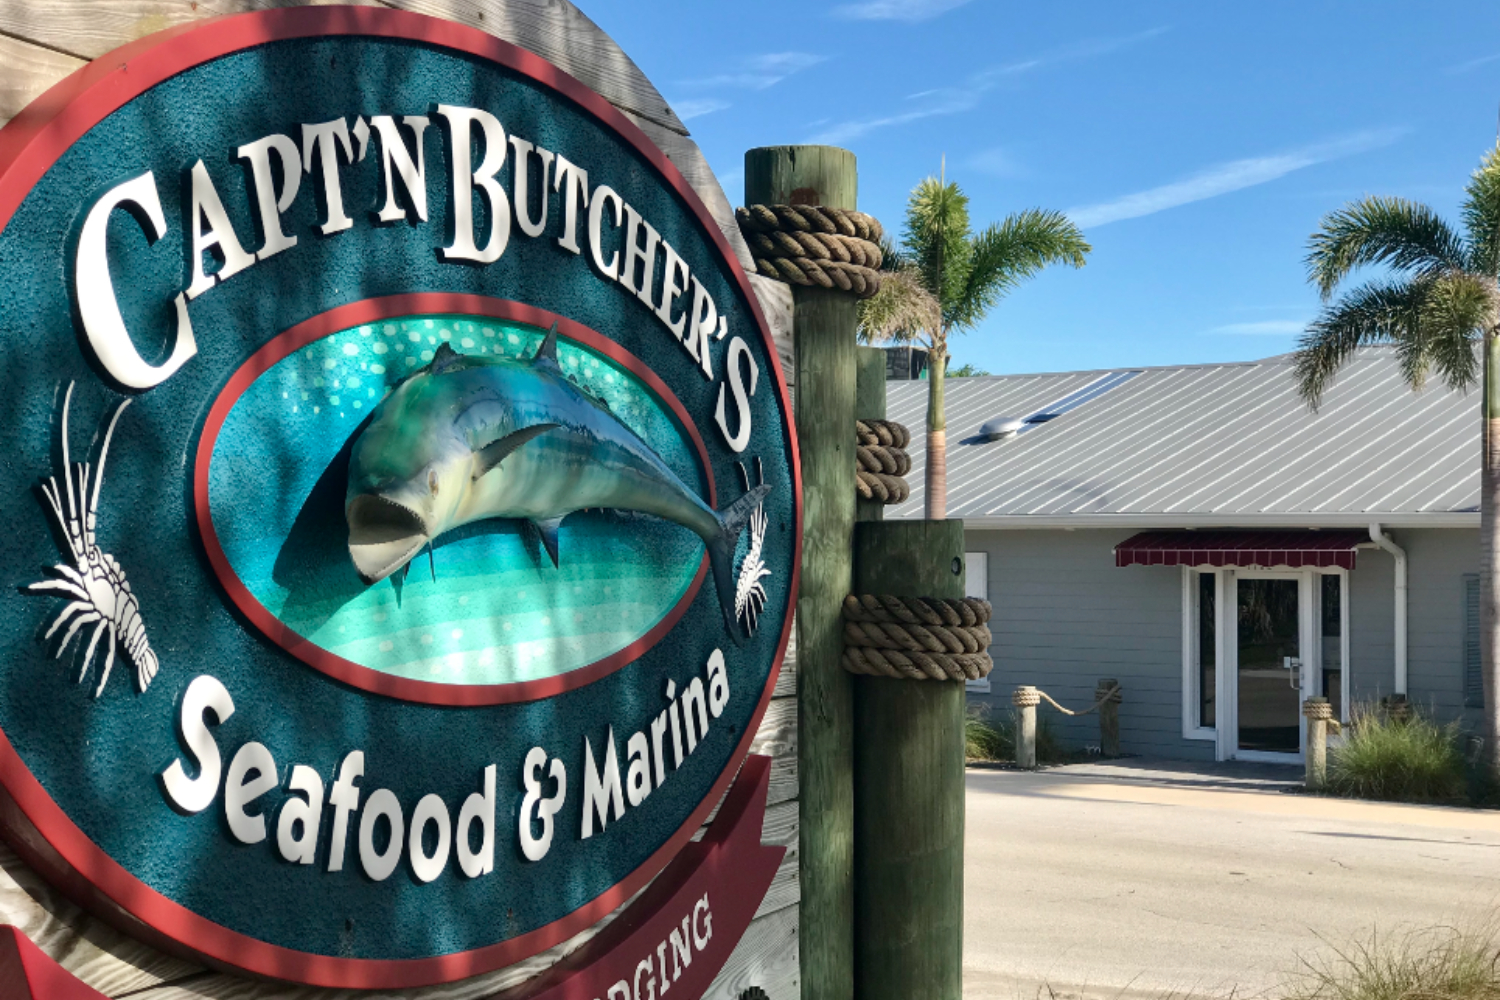 Capt'n Butcher's Seafood Grill & Bar